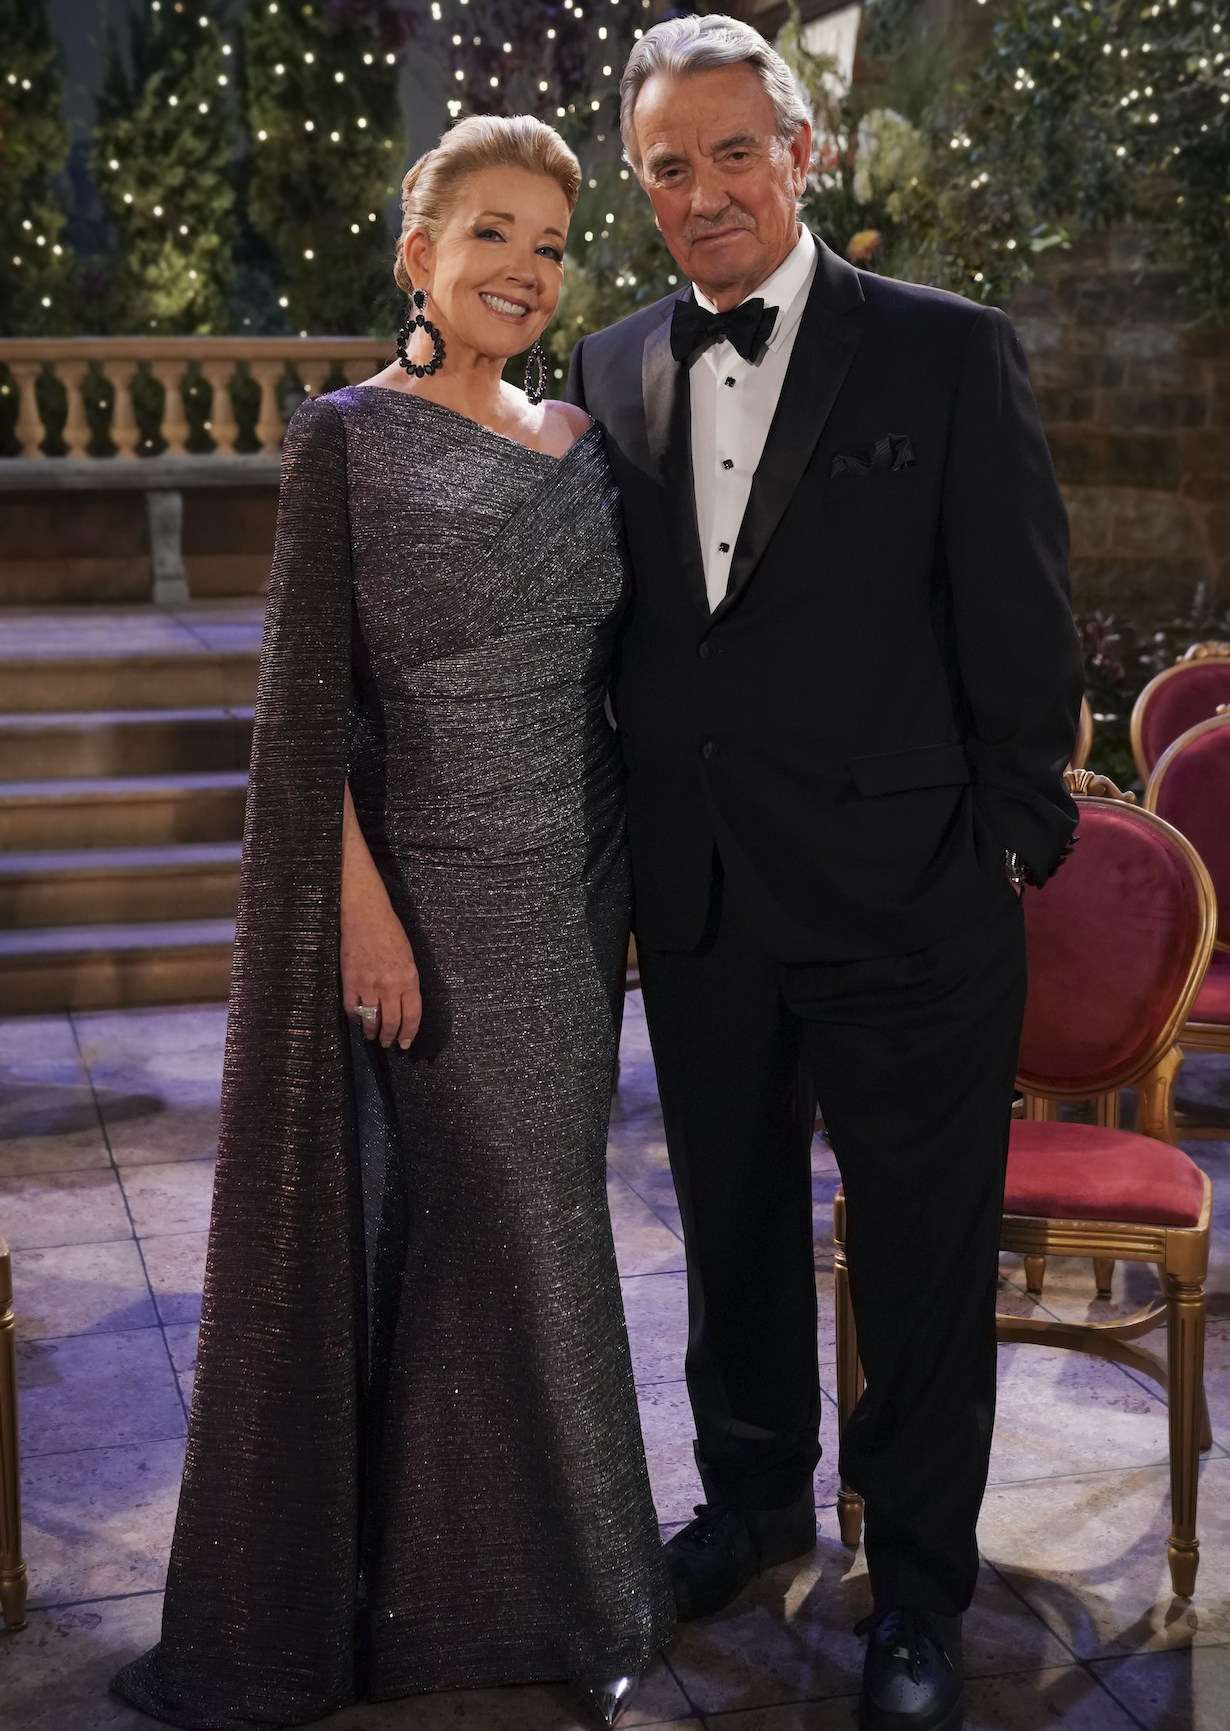 Victoria and Ashland's Wedding -- Coverage of the CBS series The Young and The Restless, scheduled to air on the CBS Television Network. Pictured (L-R): Melody Thomas Scott as Nikki Newman and Eric Braeden as Victor Newman.Photo: Sonja Flemming/CBS ©2021 CBS Broadcasting, Inc. All Rights Reserved.